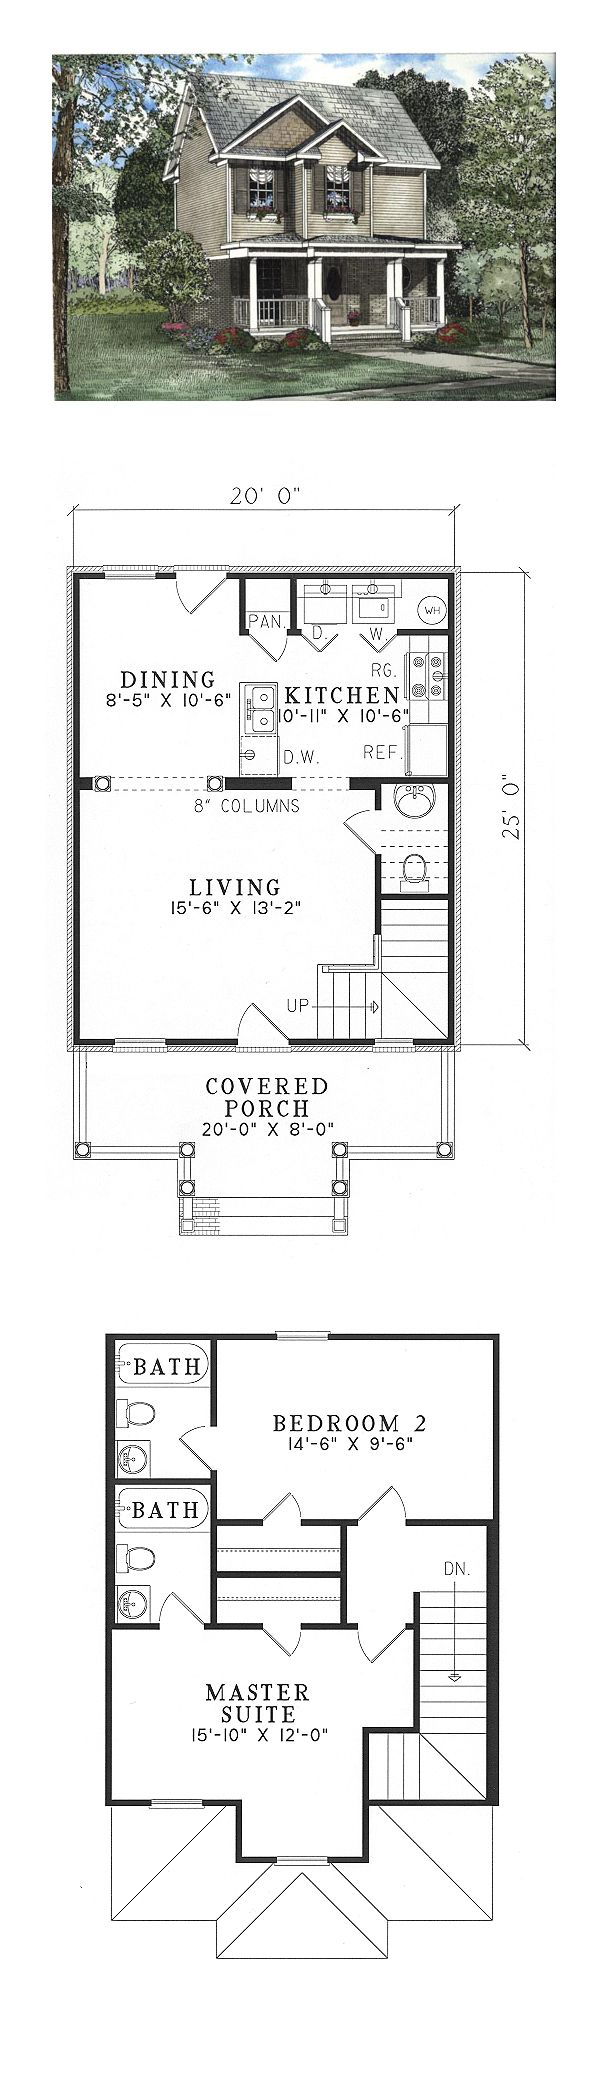 49 best narrow lot home plans images on pinterest | narrow lot